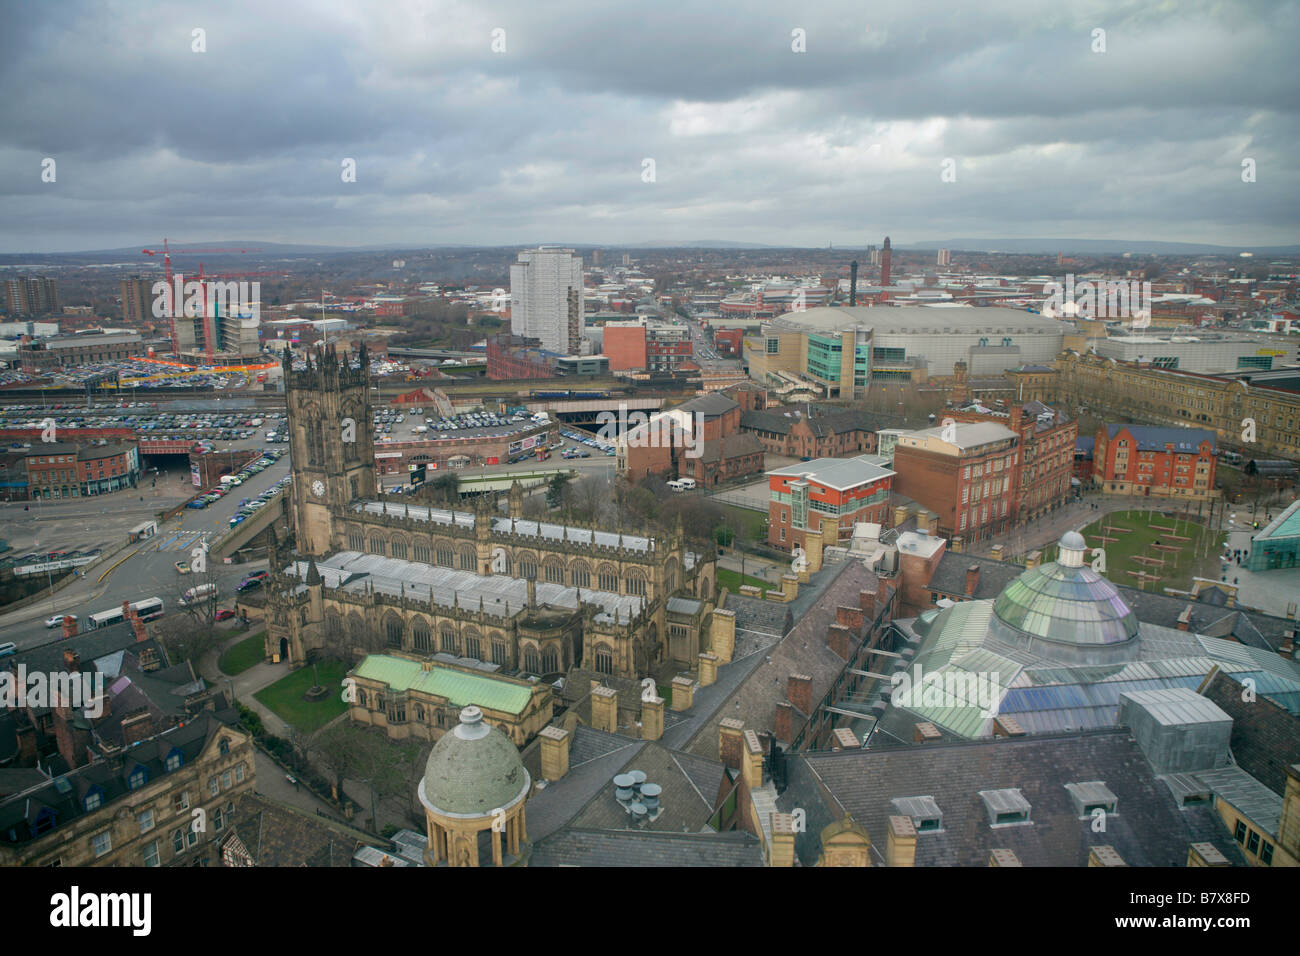 Aerial View Of Central Manchester UK Looking North West - Stock Image